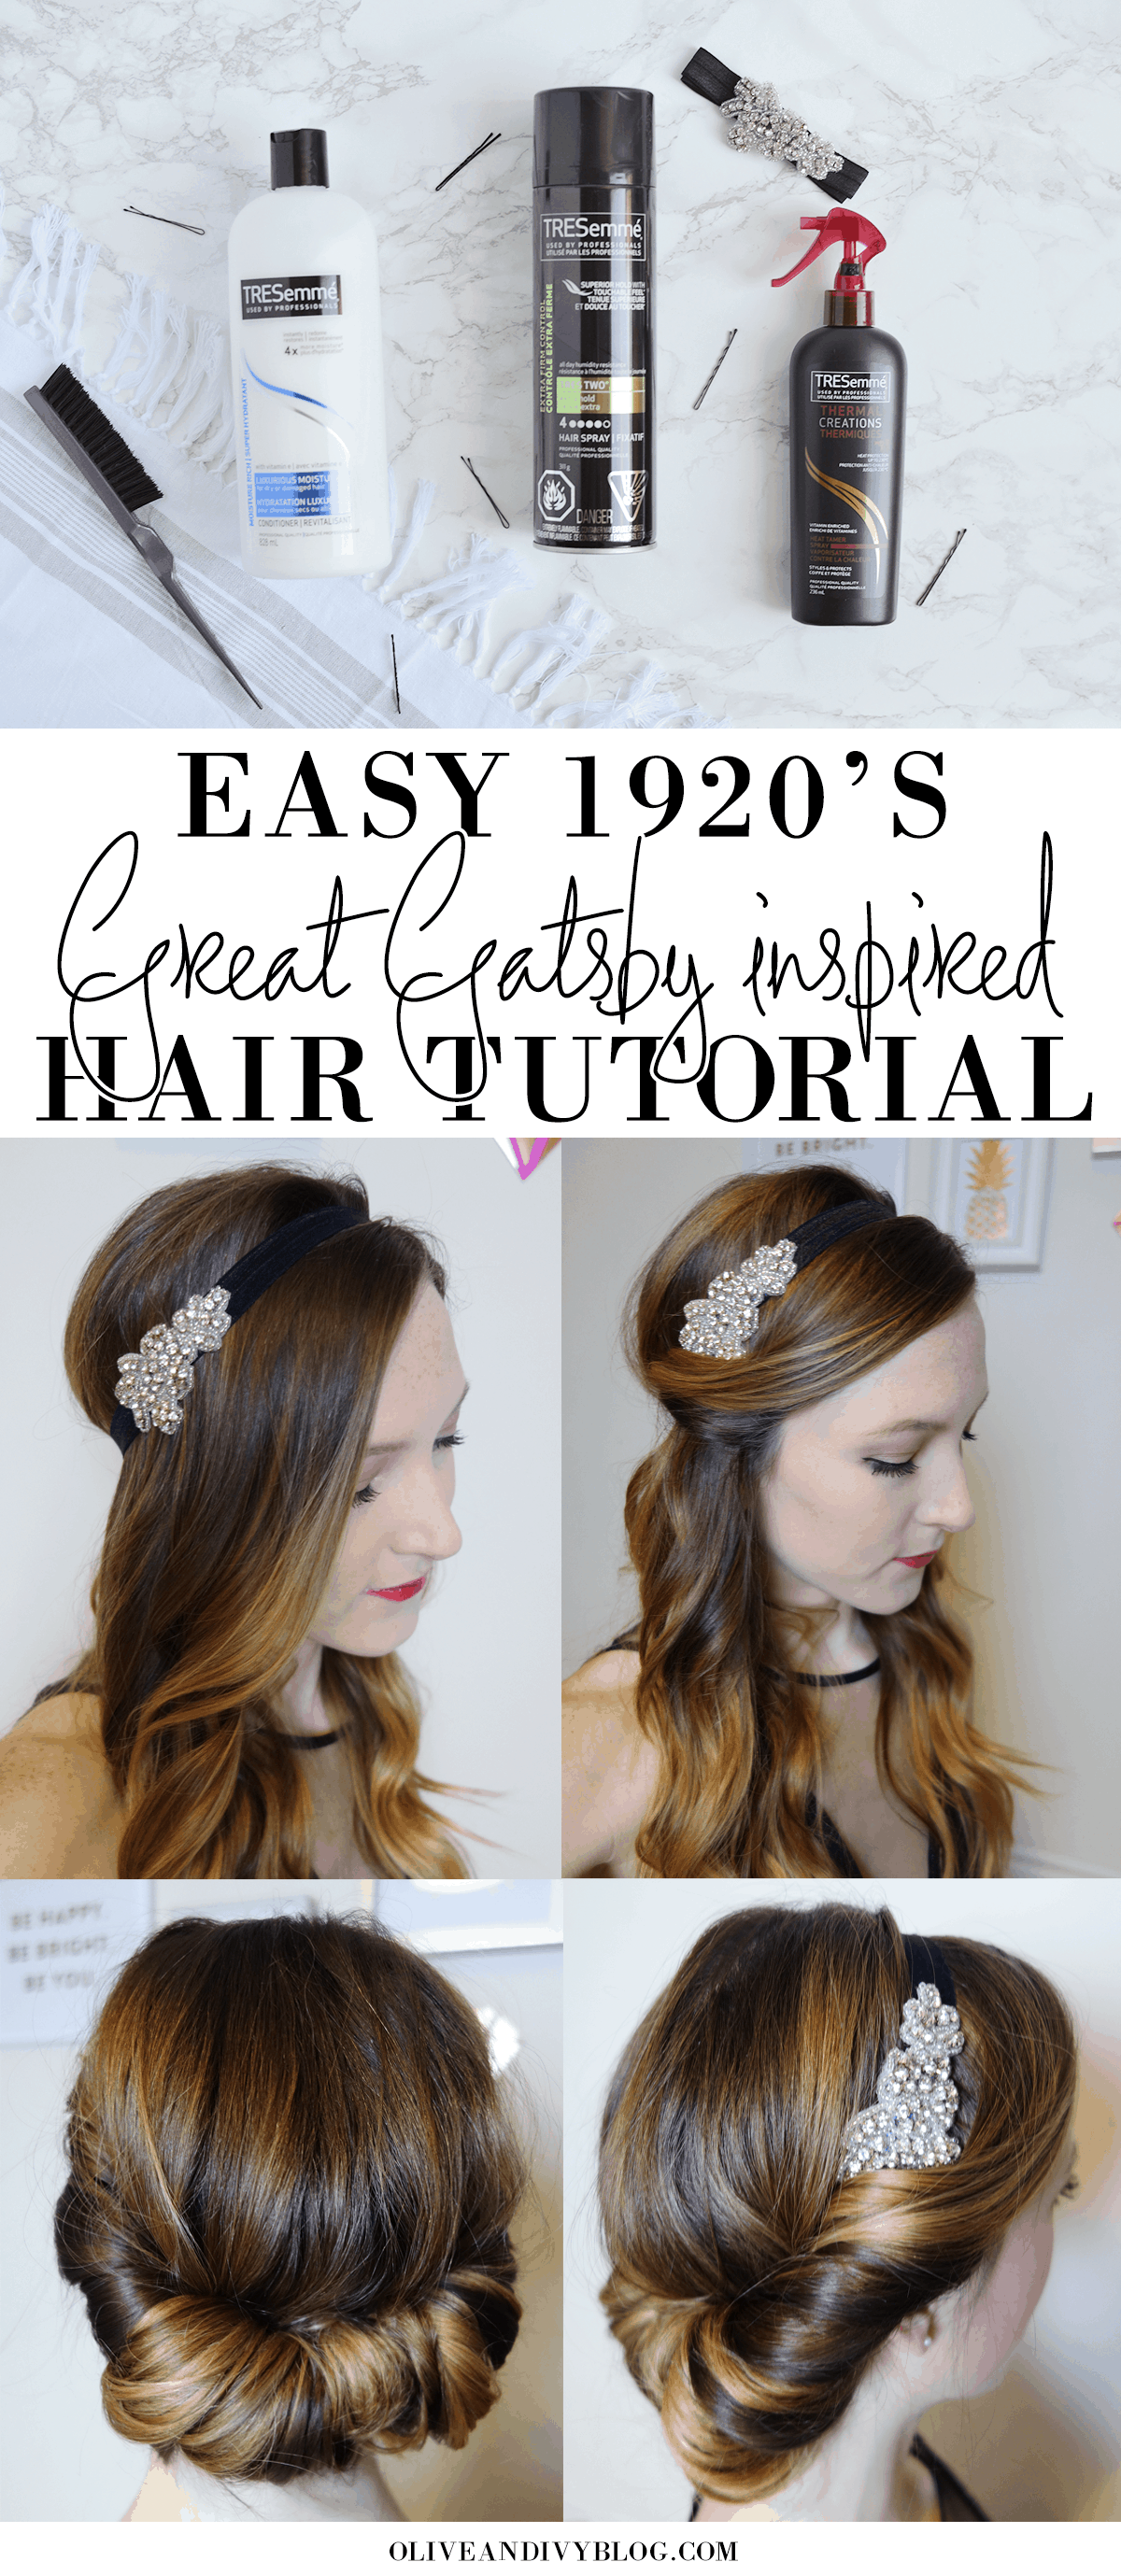 Easy 1920's/Great Gatsby Hair Tutorial | Olive & Ivy